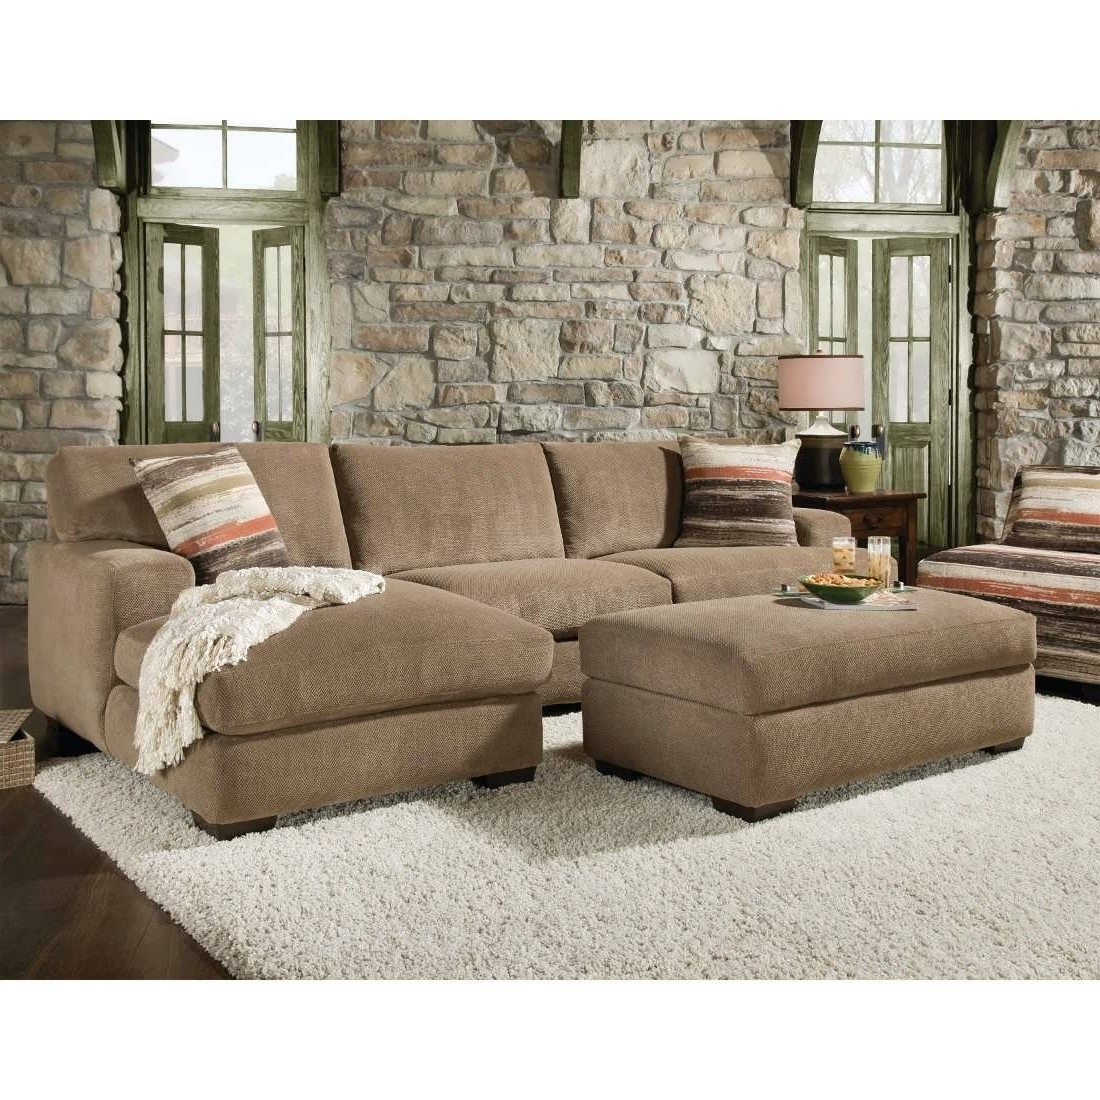 products modern aashis my sectional in luxury sofa leather color couch piece tan